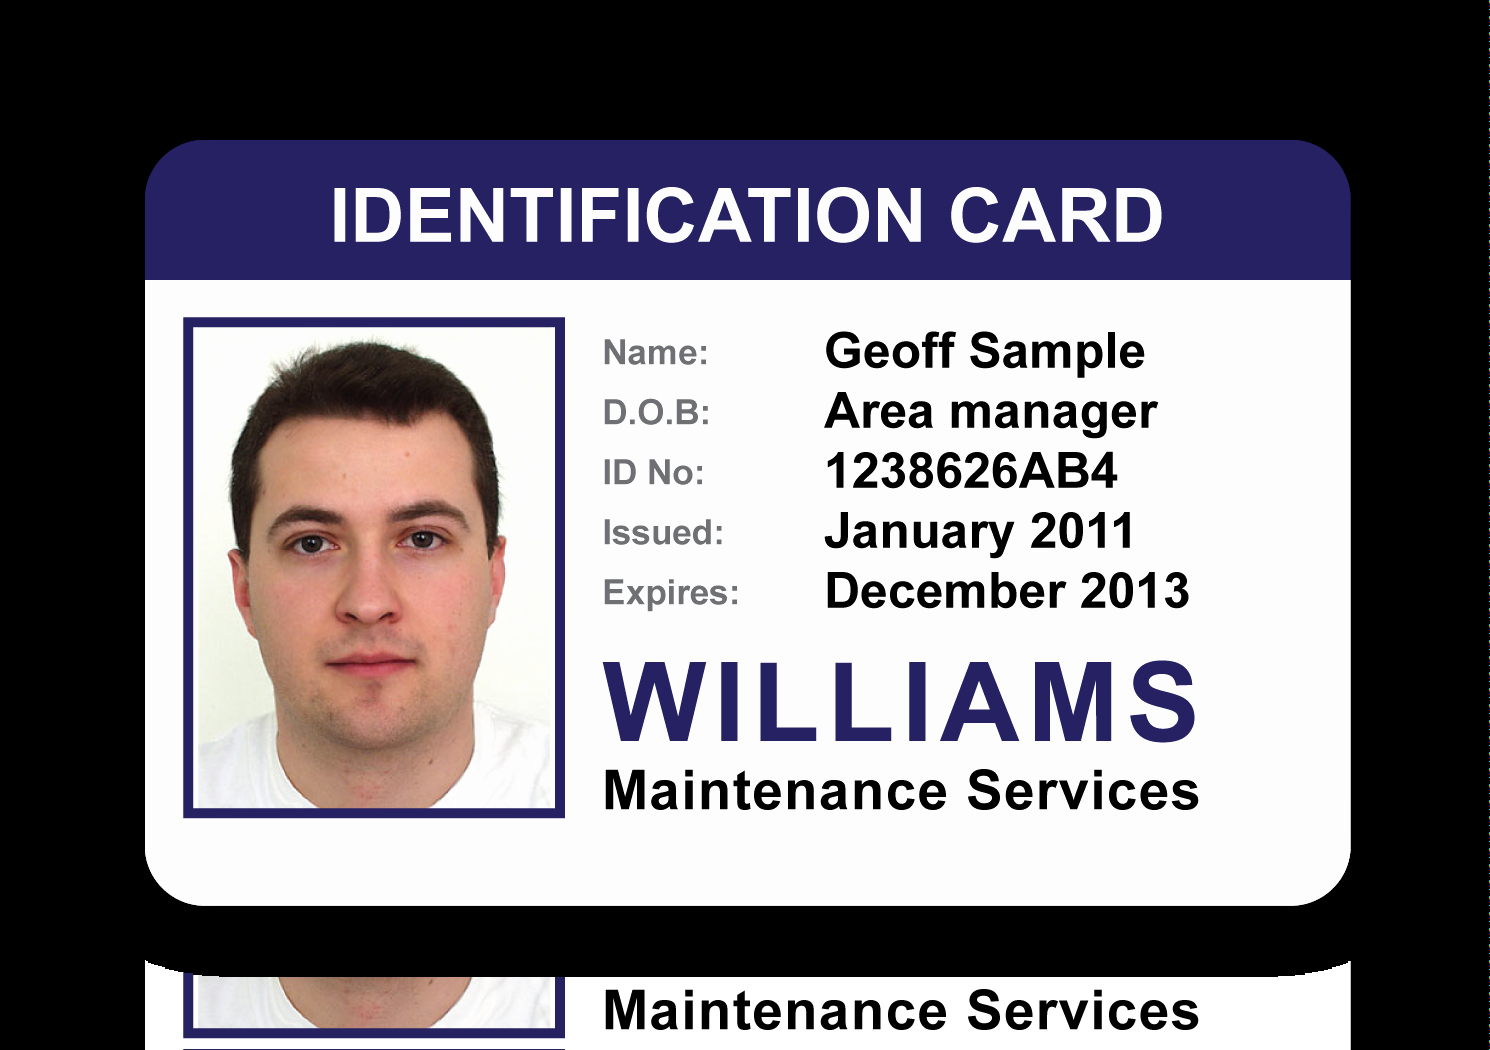 Free Printable Id Cards New Id Card Gallery An Image to View Larger Size – Go